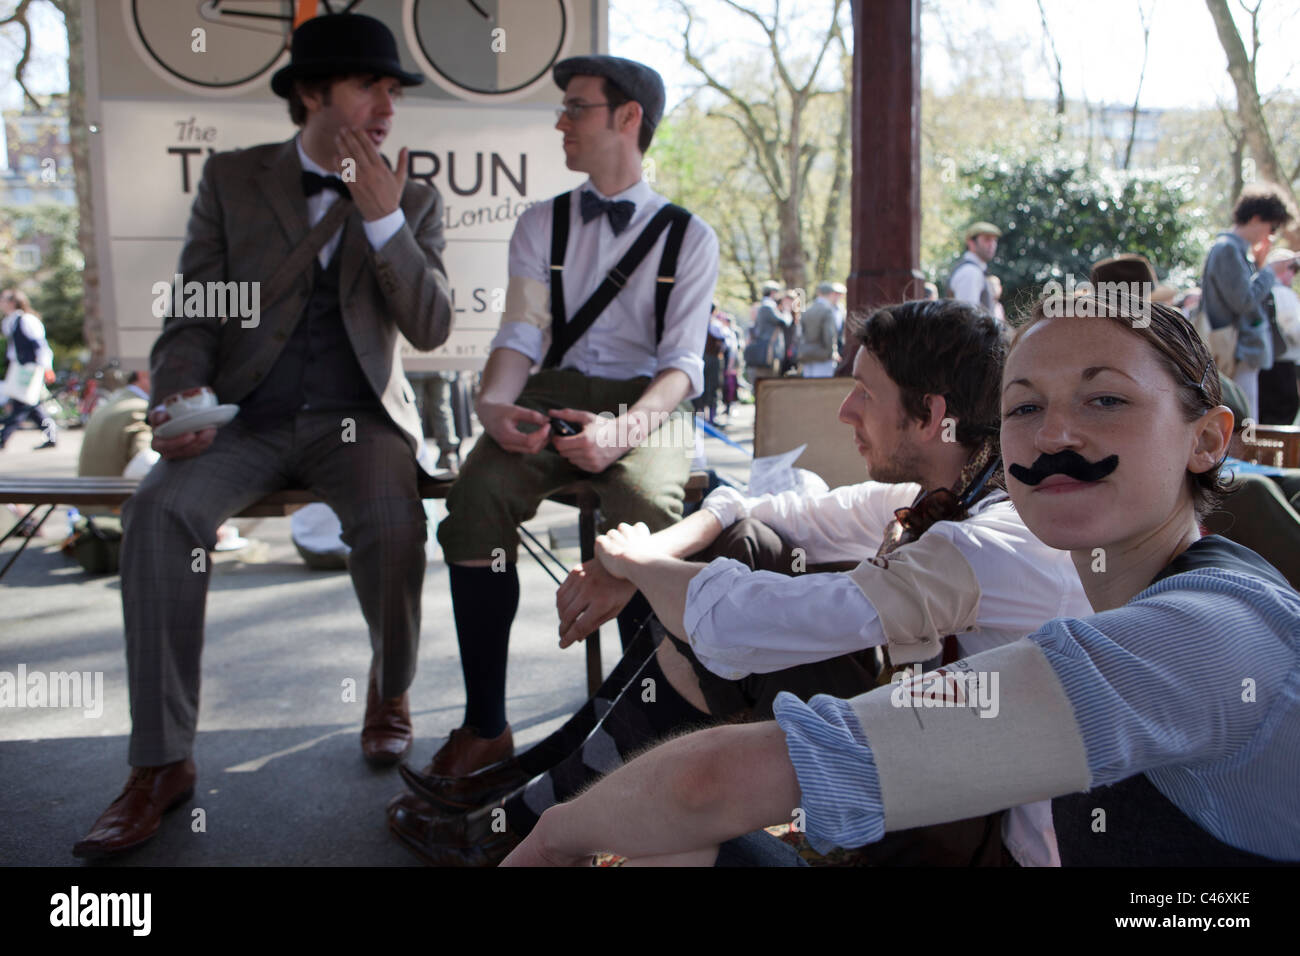 The Tweed Run, London, UK, 11th April 2011: participants take a break in Lincoln's Inn Fields Stock Photo